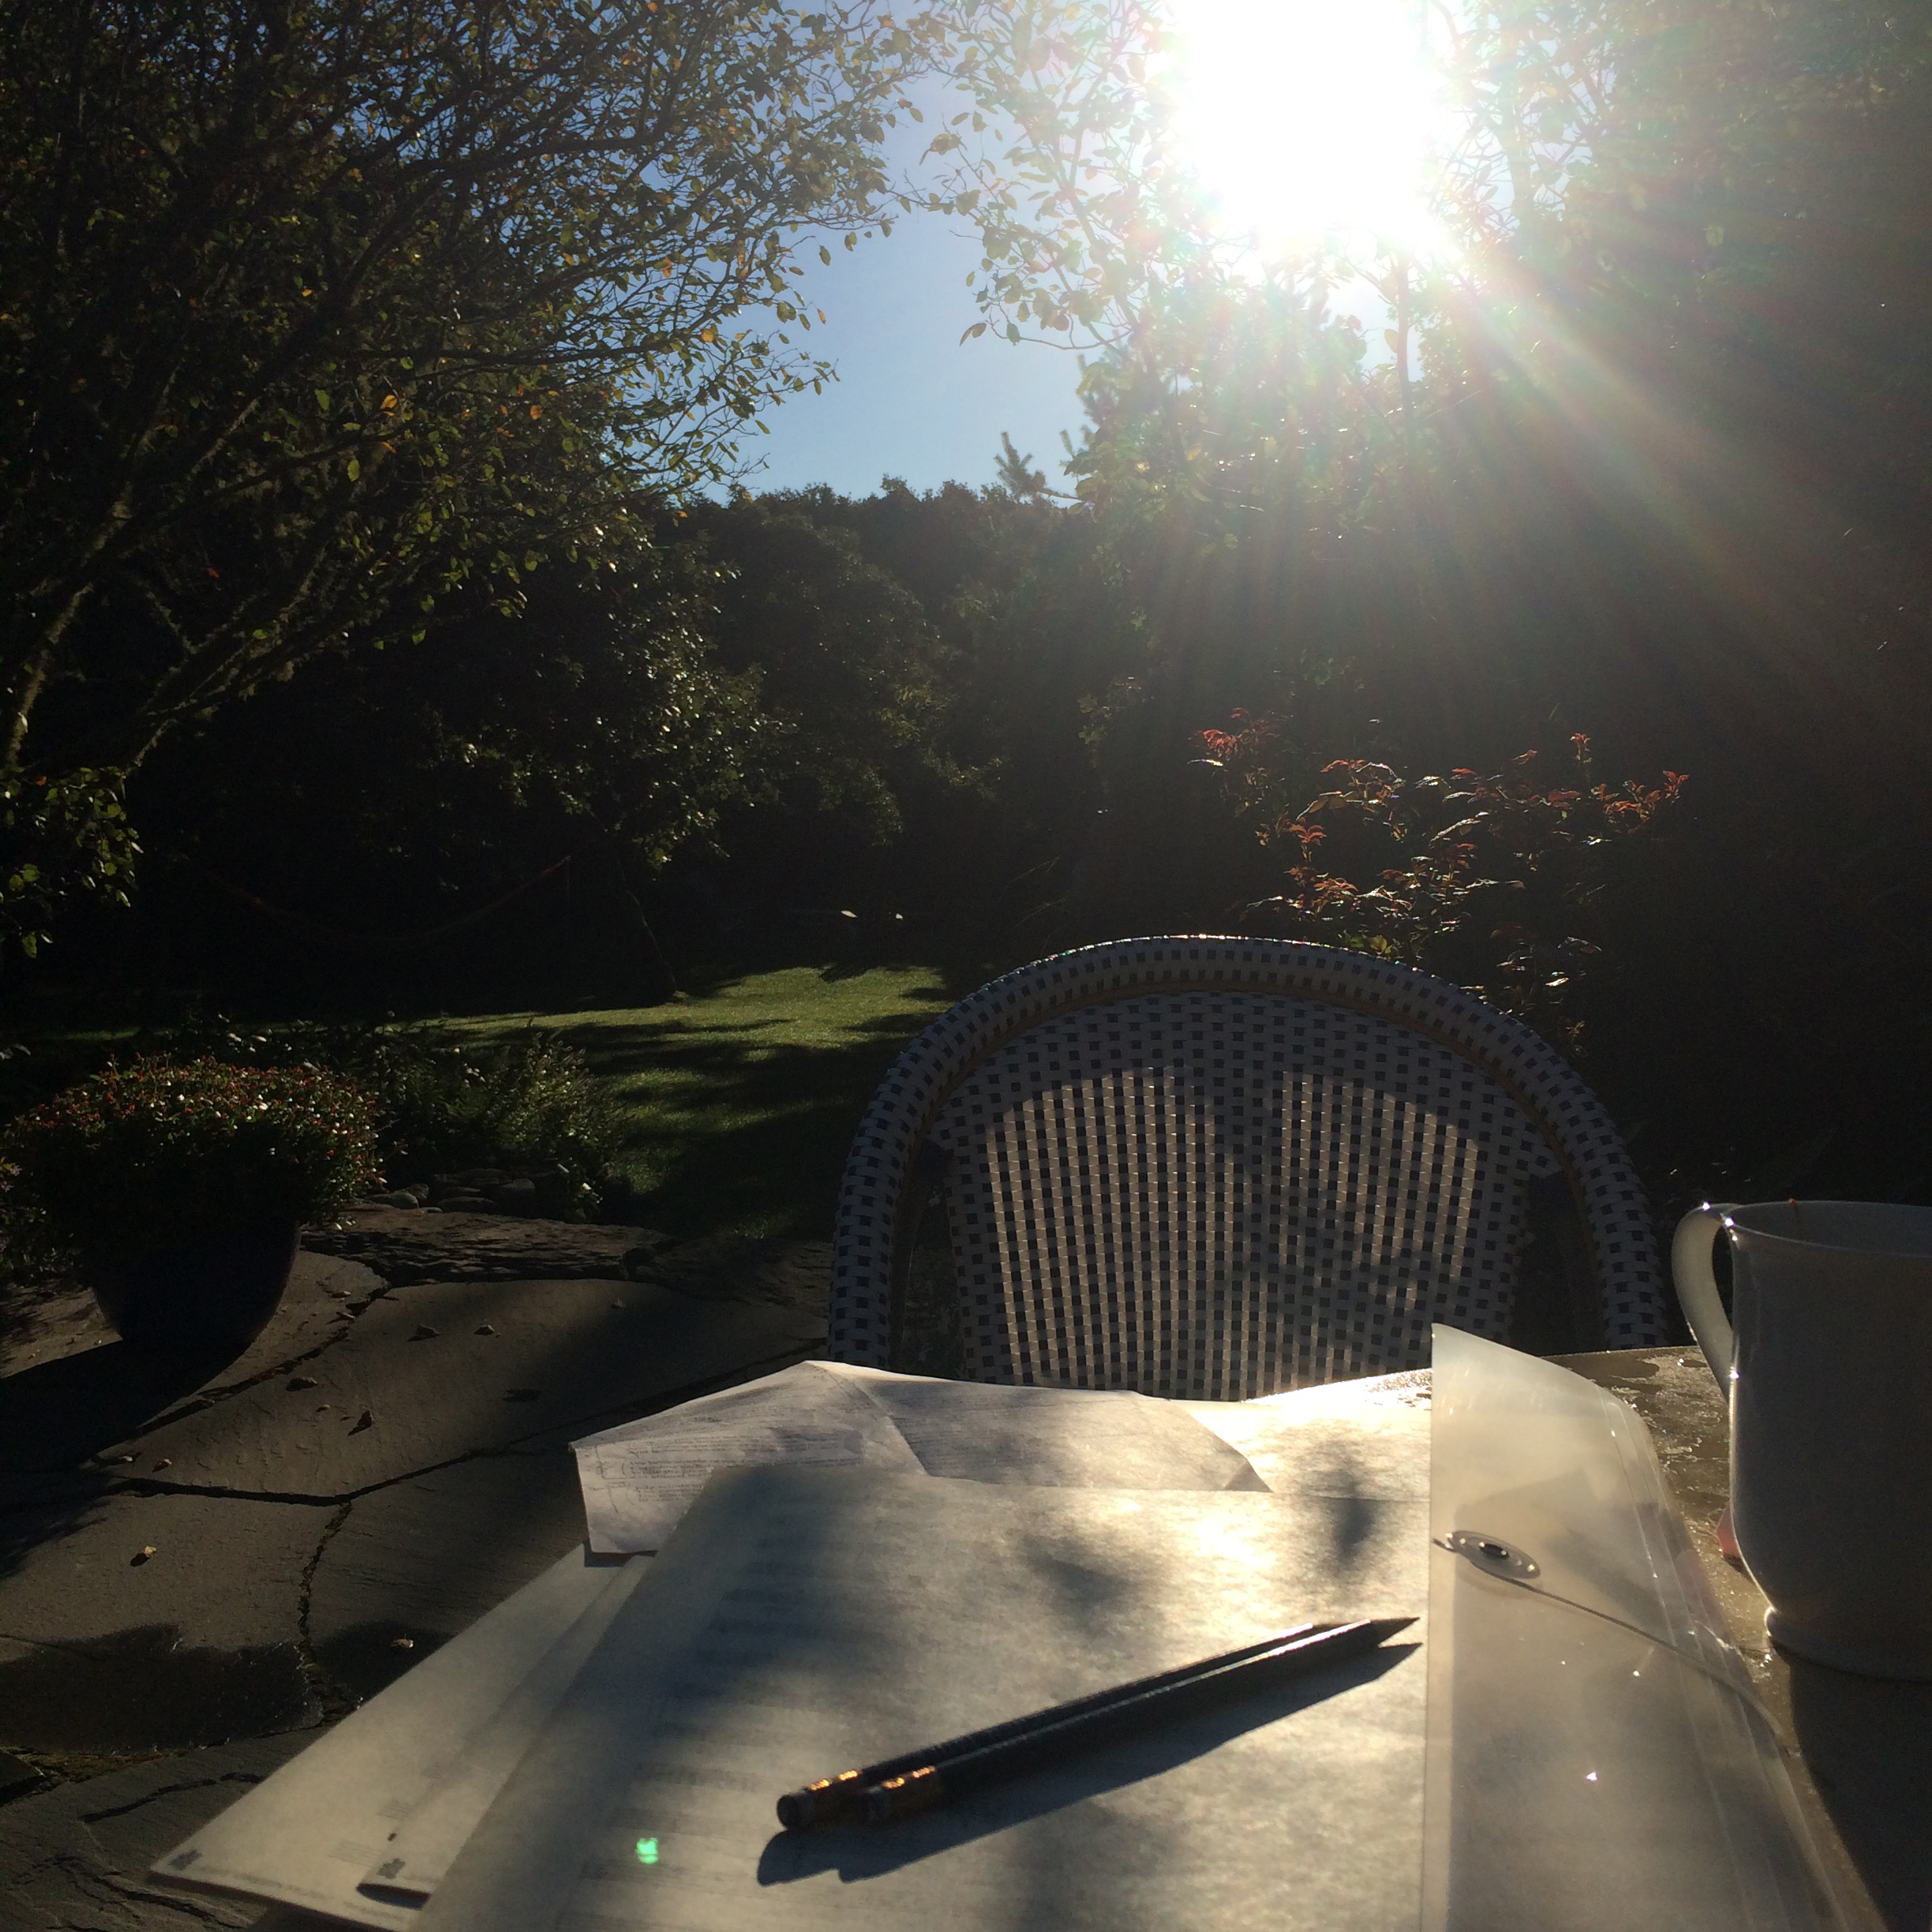 A pen sits atop a blank page of music notation paper on a table outside, the sun setting in the background.